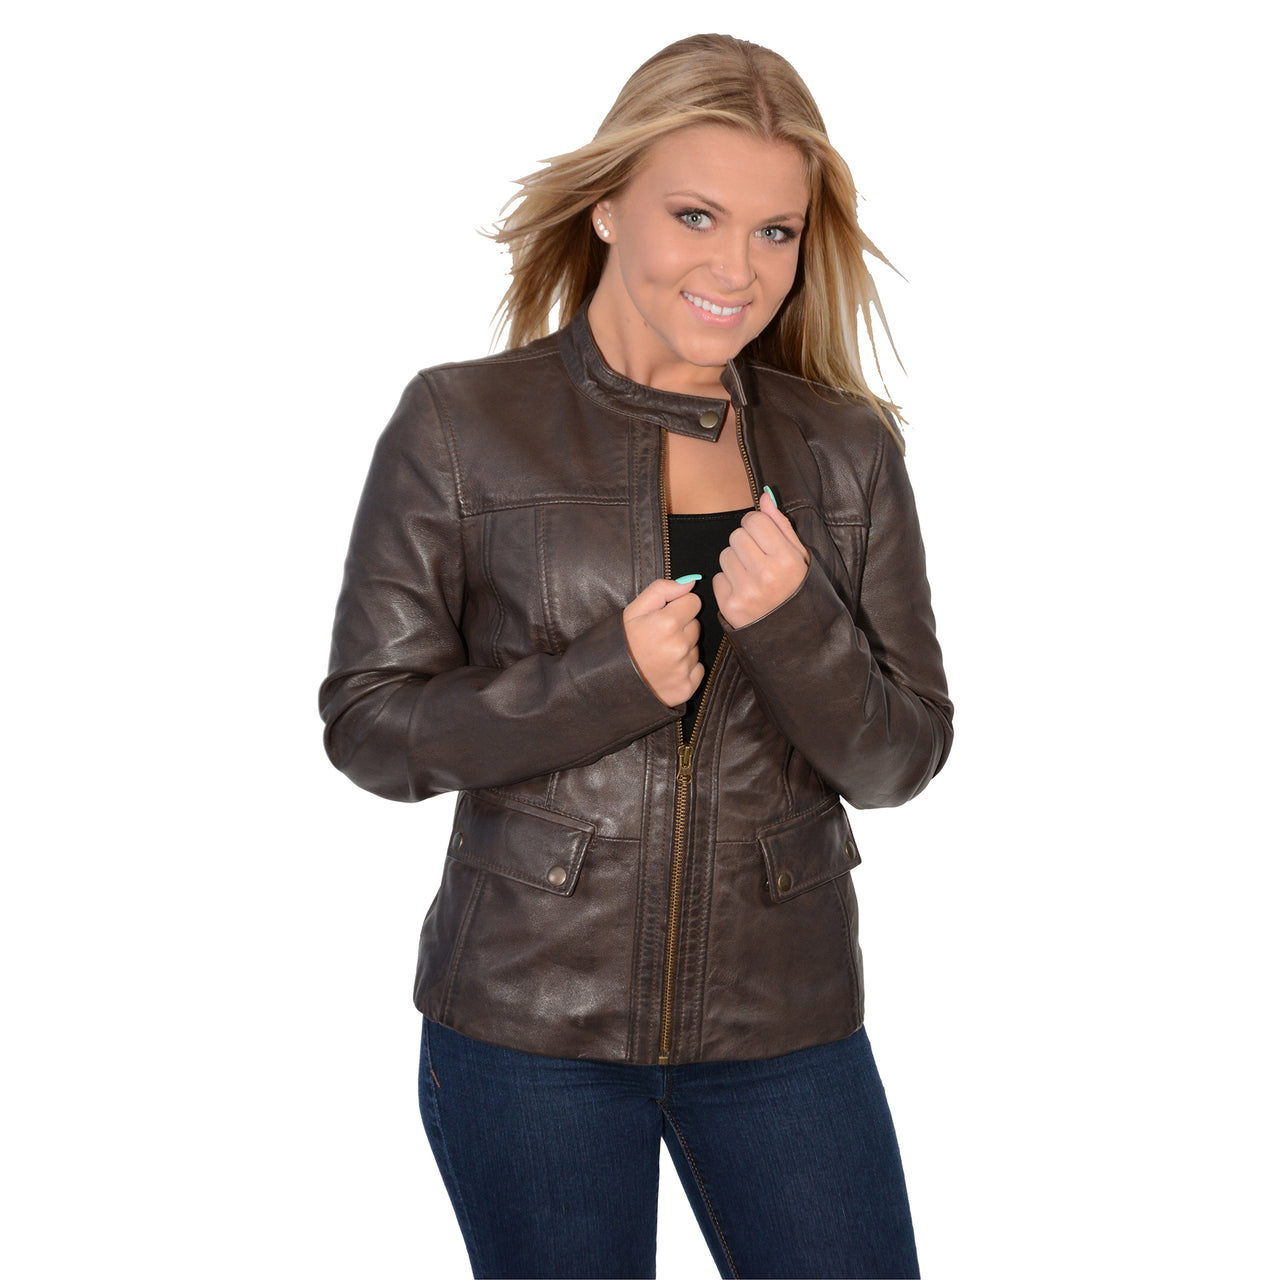 Ladies snap collar scuba jacket with patch pockets - HighwayLeather